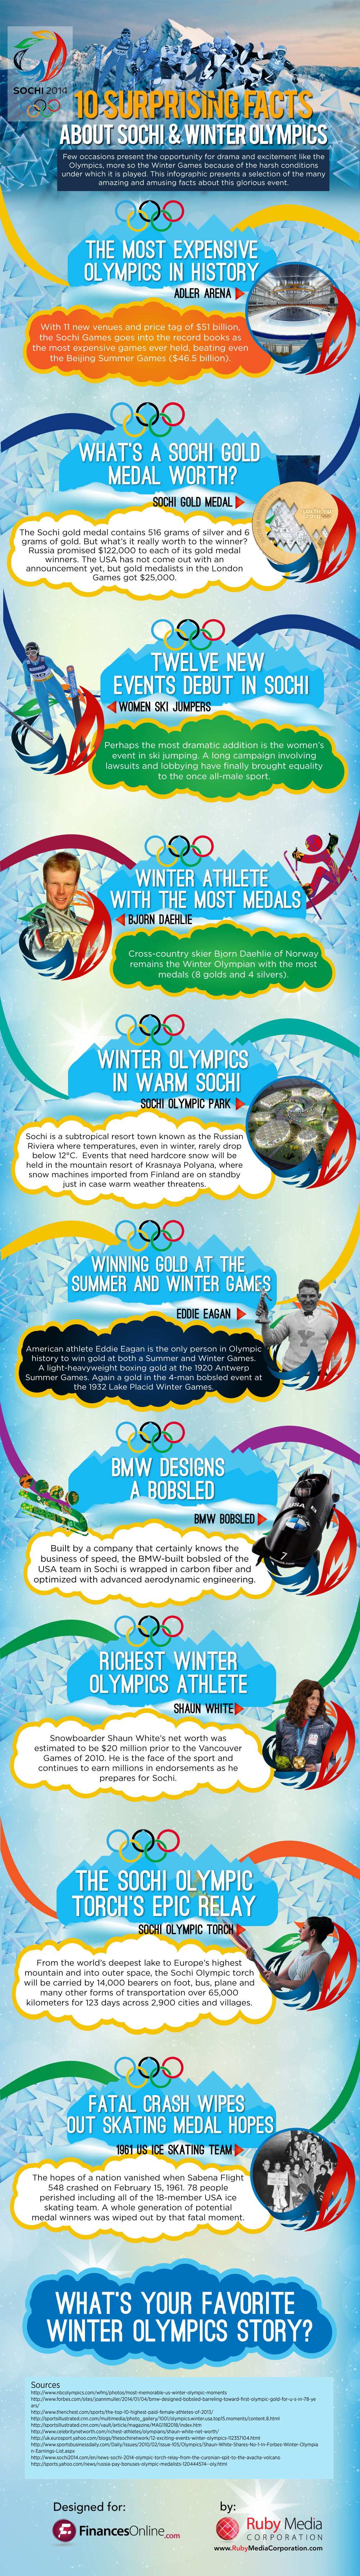 Sochi Winter Olympics: 10 Sport Facts About The Most Expensive Games Ever